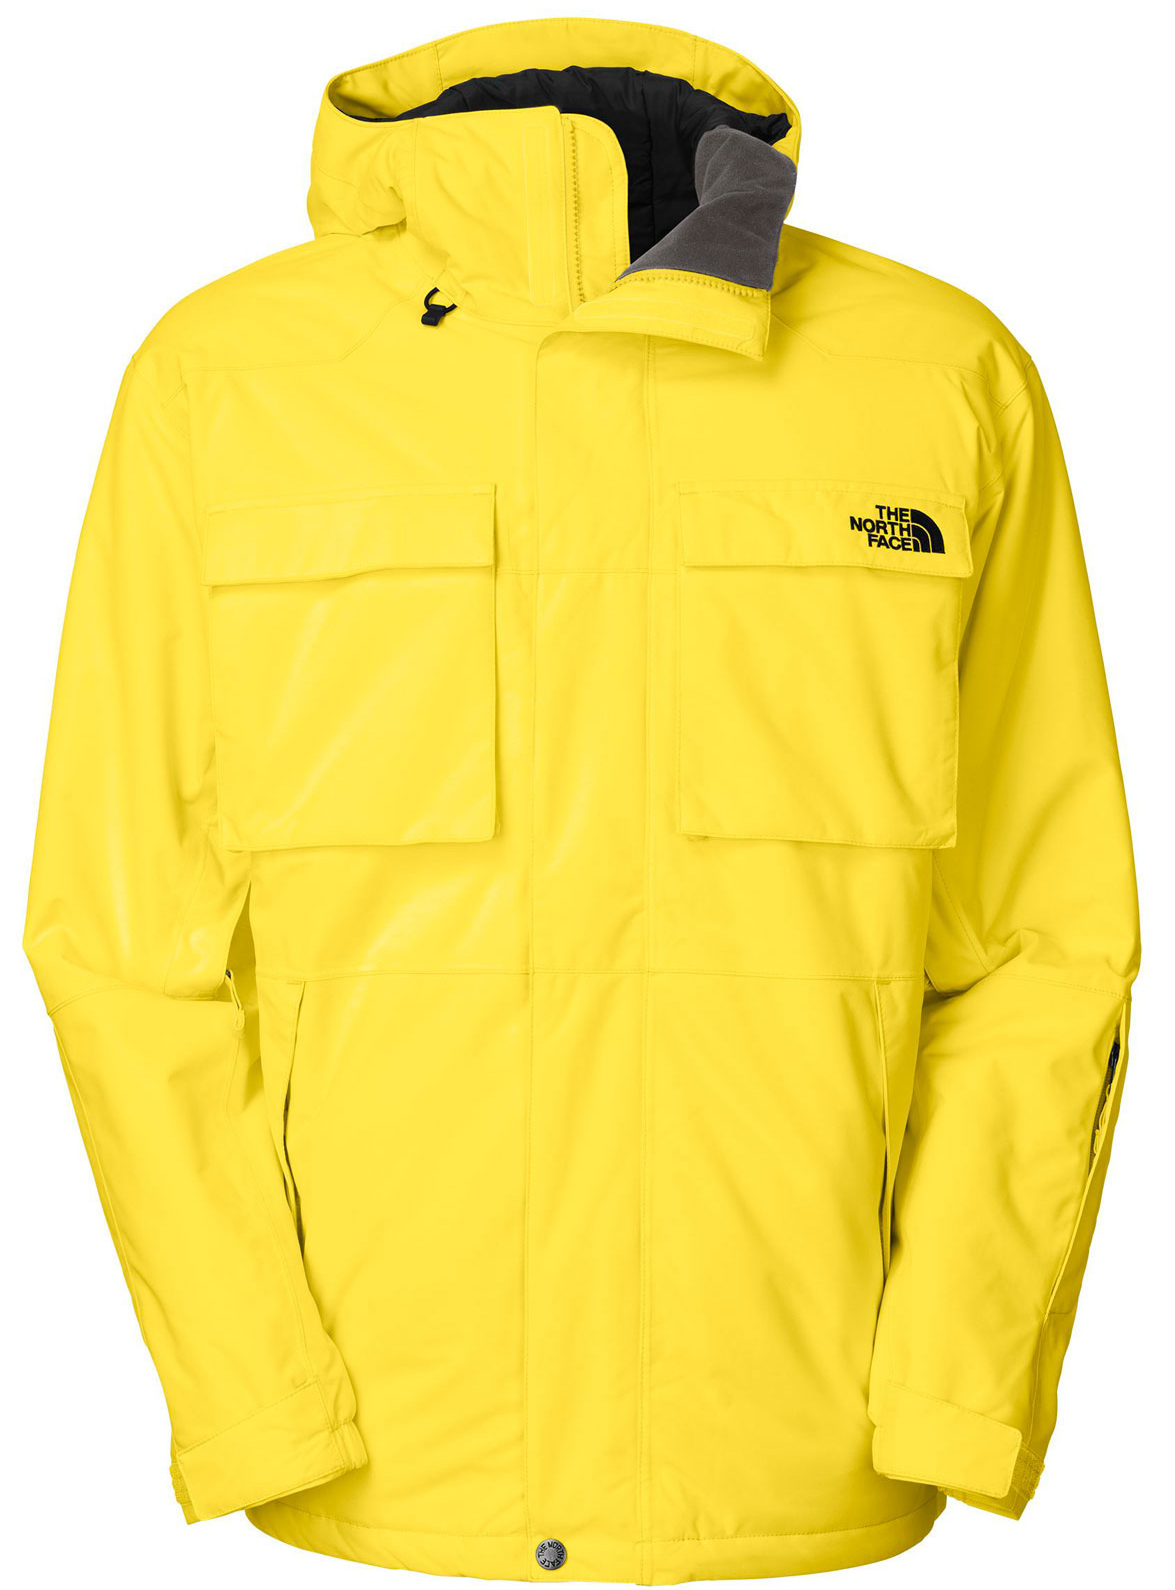 "Ski Take care of business on the mountain in this work-wear-influenced HyVent shell with a bold, three-colorblock design.Key Features of The North Face Decagon Ski Jacket: Avg Weight: 1100 g (38.8 oz) Center back: 30.25"" Fabric: shell: HyVent® 2L proweave Lining: taffeta, tricot, mesh Waterproof, breathable, fully seam sealed Adjustable fixed hood Pit-zip vents Zip hand pockets Flap chest pockets External media pocket Internal goggle pocket Wrist accessory pocket with goggle cloth Snap-down powder skirt with elastic gripper Hook-and-loop adjustable cuffs Adjustable hem system - $146.95"